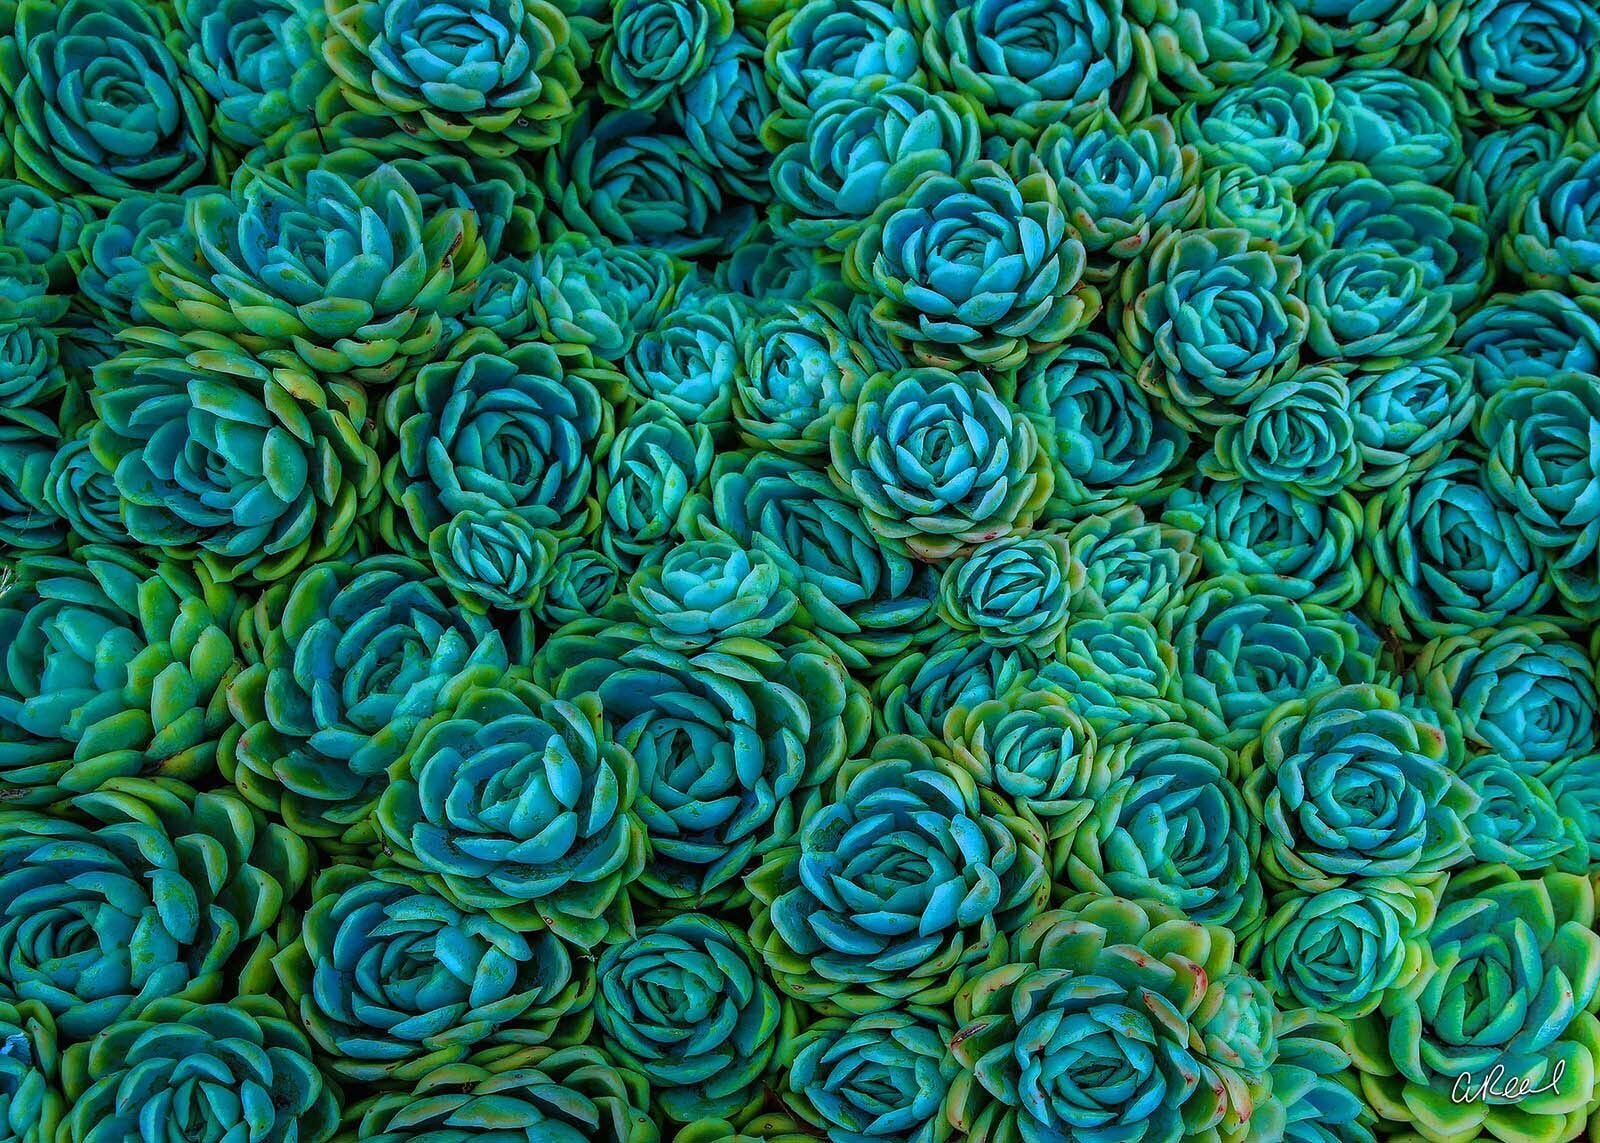 Succulent, Abstract, Fine Art, Limited Edition, Green, Blue, San Francisco, California, photo